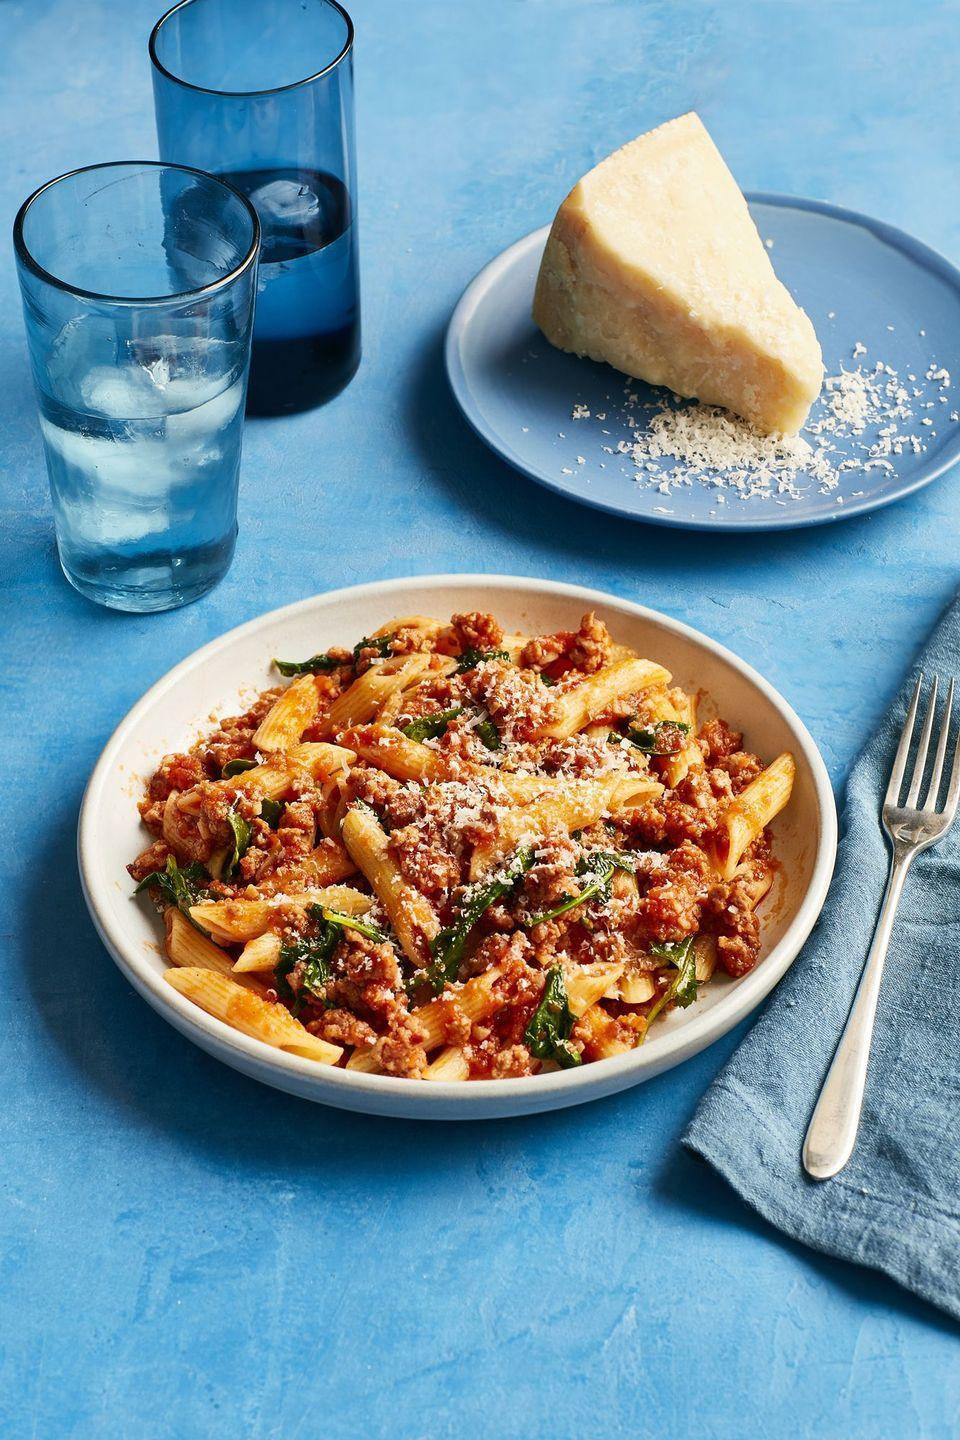 "<p>If you've had a hectic day of running around and need something hearty, this pasta dish will not disappoint. Sprinkle on some fresh parmesan, and you'll think you've been transported straight to Italy.</p><p><em><a href=""https://www.womansday.com/food-recipes/food-drinks/recipes/a60509/pasta-with-easy-sausage-ragu-recipe/"" rel=""nofollow noopener"" target=""_blank"" data-ylk=""slk:Get the Pasta with Easy Sausage Ragu recipe."" class=""link rapid-noclick-resp"">Get the Pasta with Easy Sausage Ragu recipe.</a></em></p>"